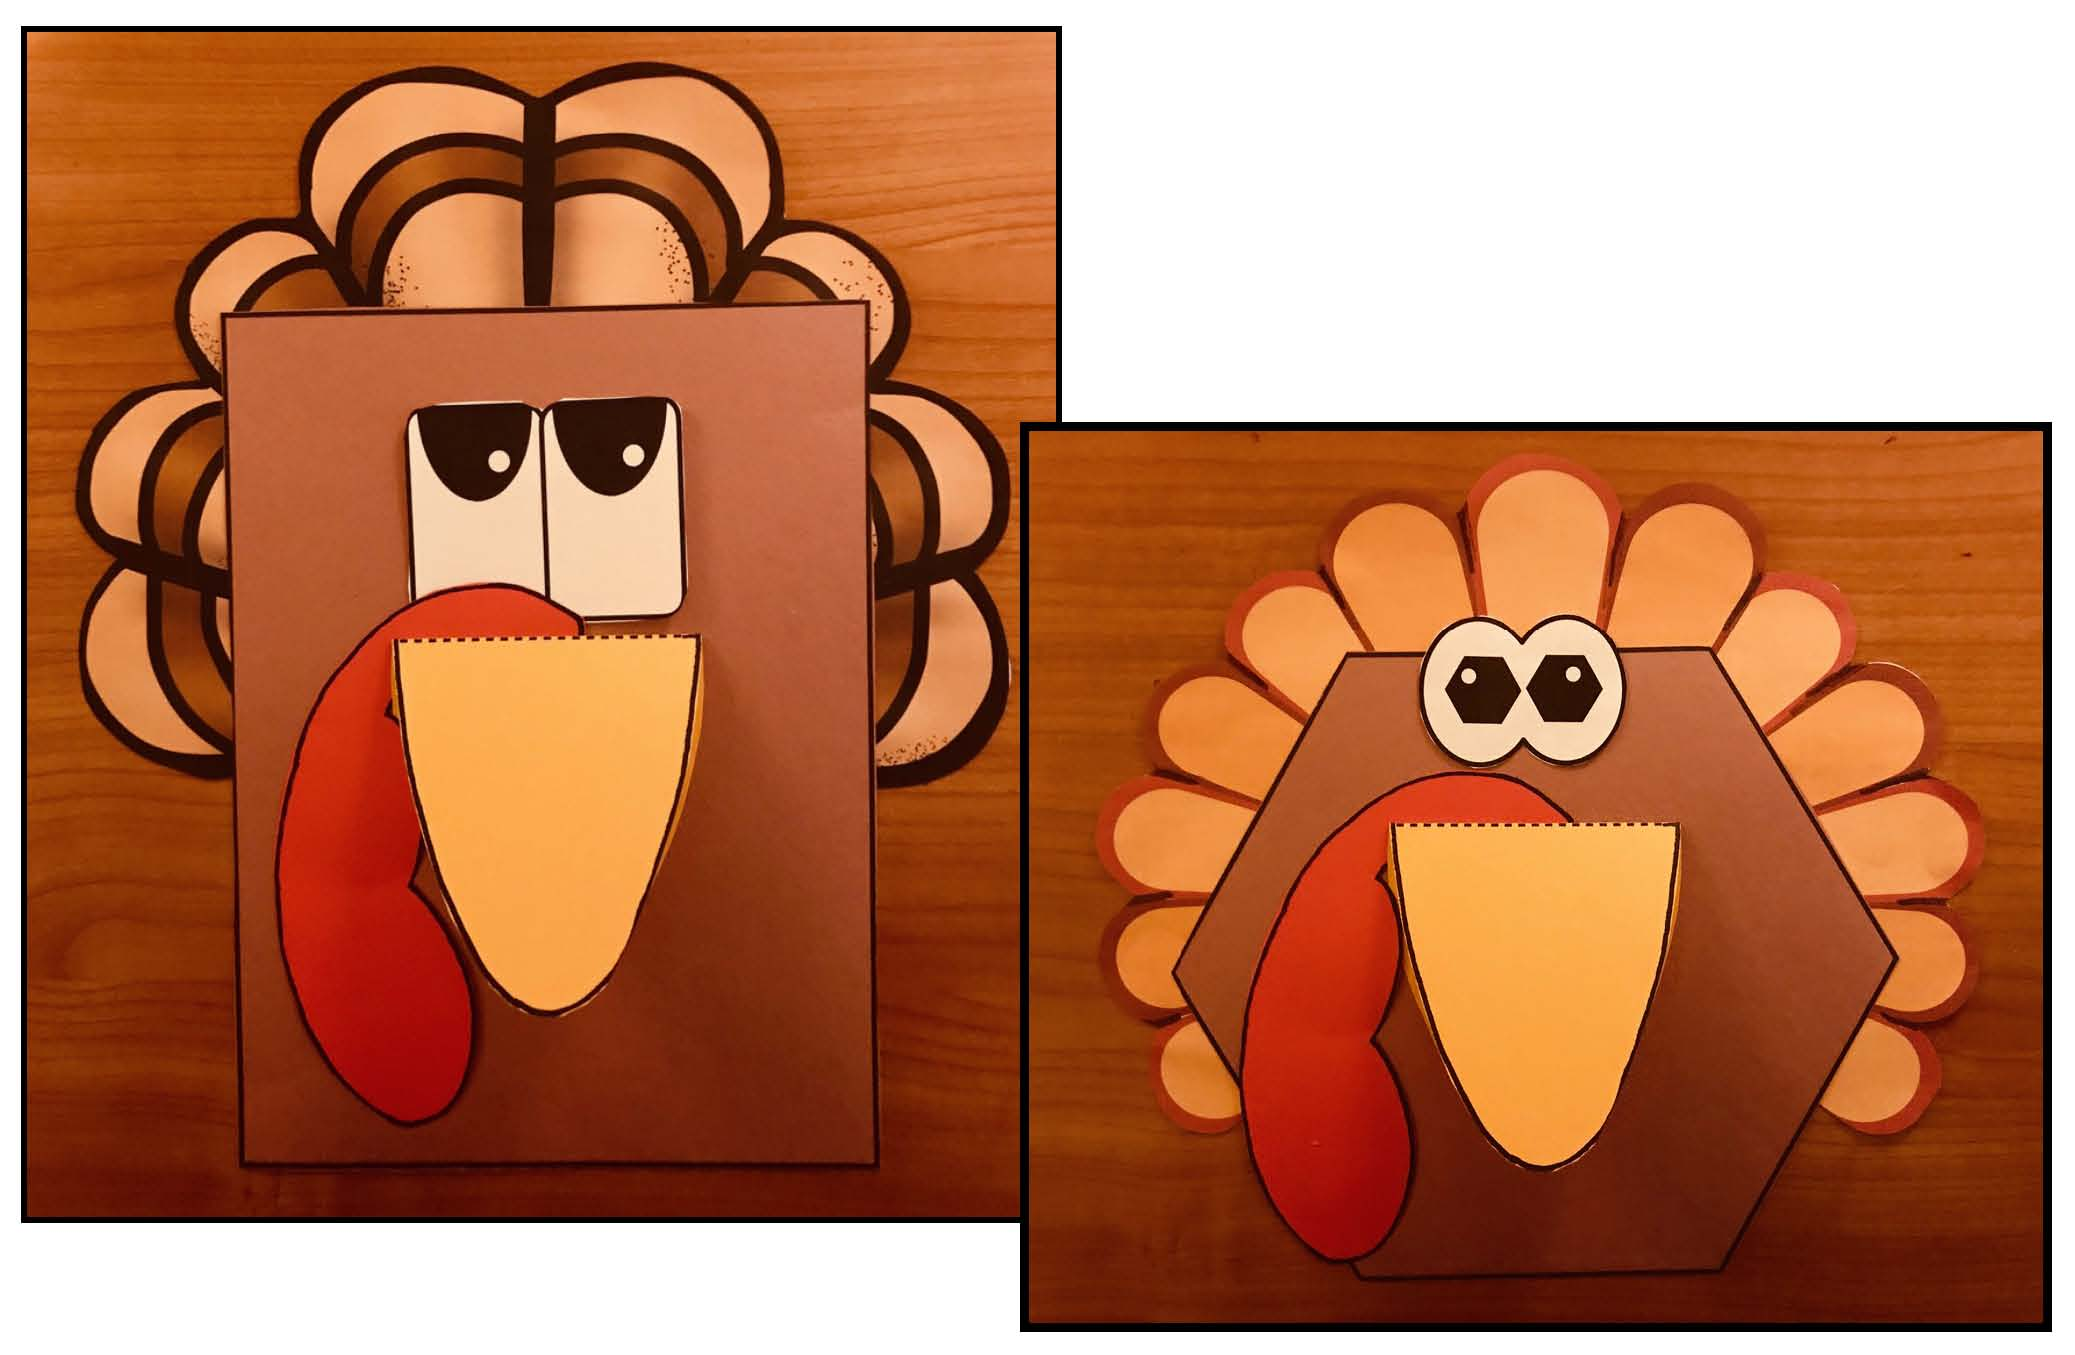 turkey crafts, turkey activities, 2D shape activities, 2D shape crafts, 2D shape assessments, attribute activities for 2D shapes, bulletin boards for 2D shapes, Thanksgiving crafts, Thanksgiving activities, 2D shape centers, shape games